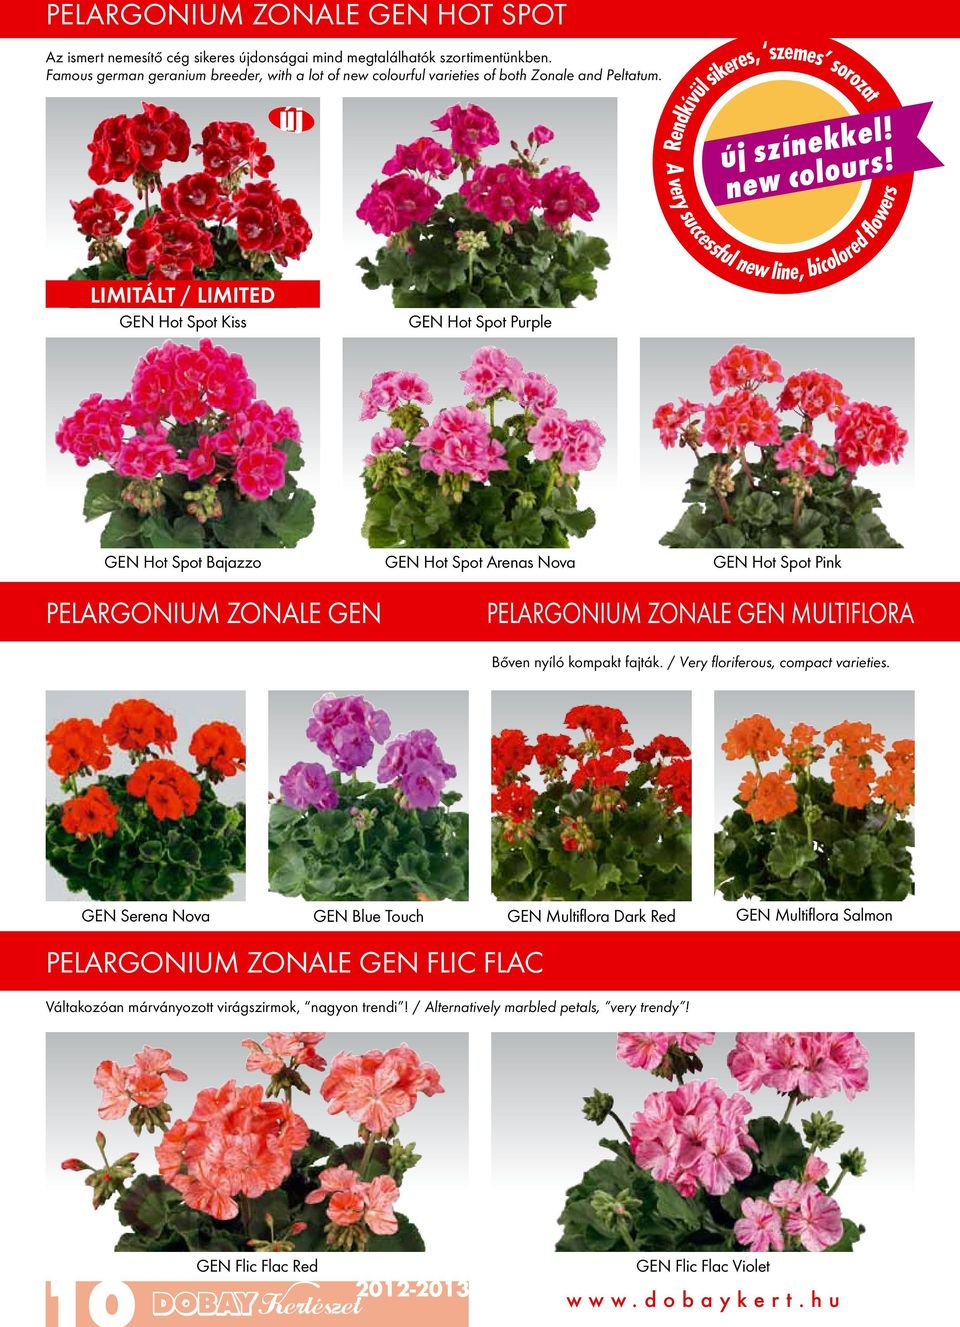 Rendkívül sikeres, szemes sorozat A very successful new line, bicolored flowers LIMITÁLT / LIMITED GEN Hot Spot Kiss GEN Hot Spot Purple GEN Hot Spot Bajazzo GEN Hot Spot Arenas Nova GEN Hot Spot